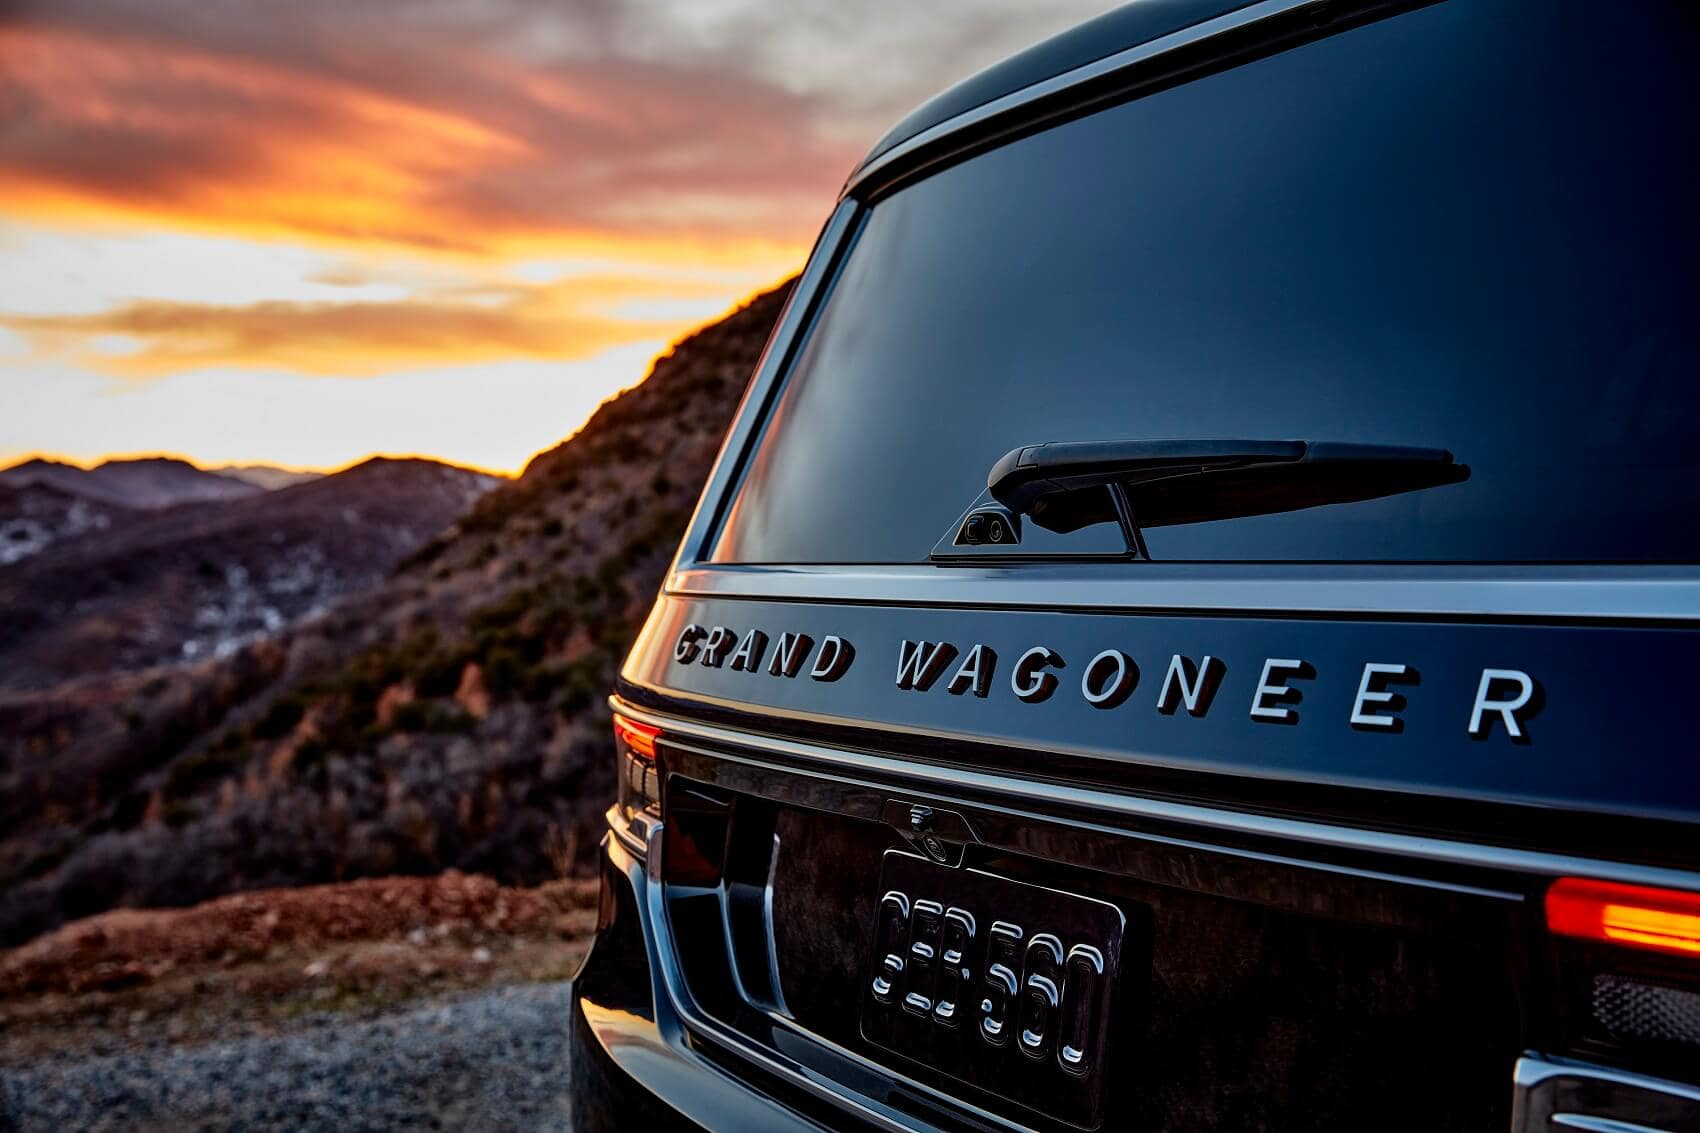 About the Jeep Grand Wagoneer